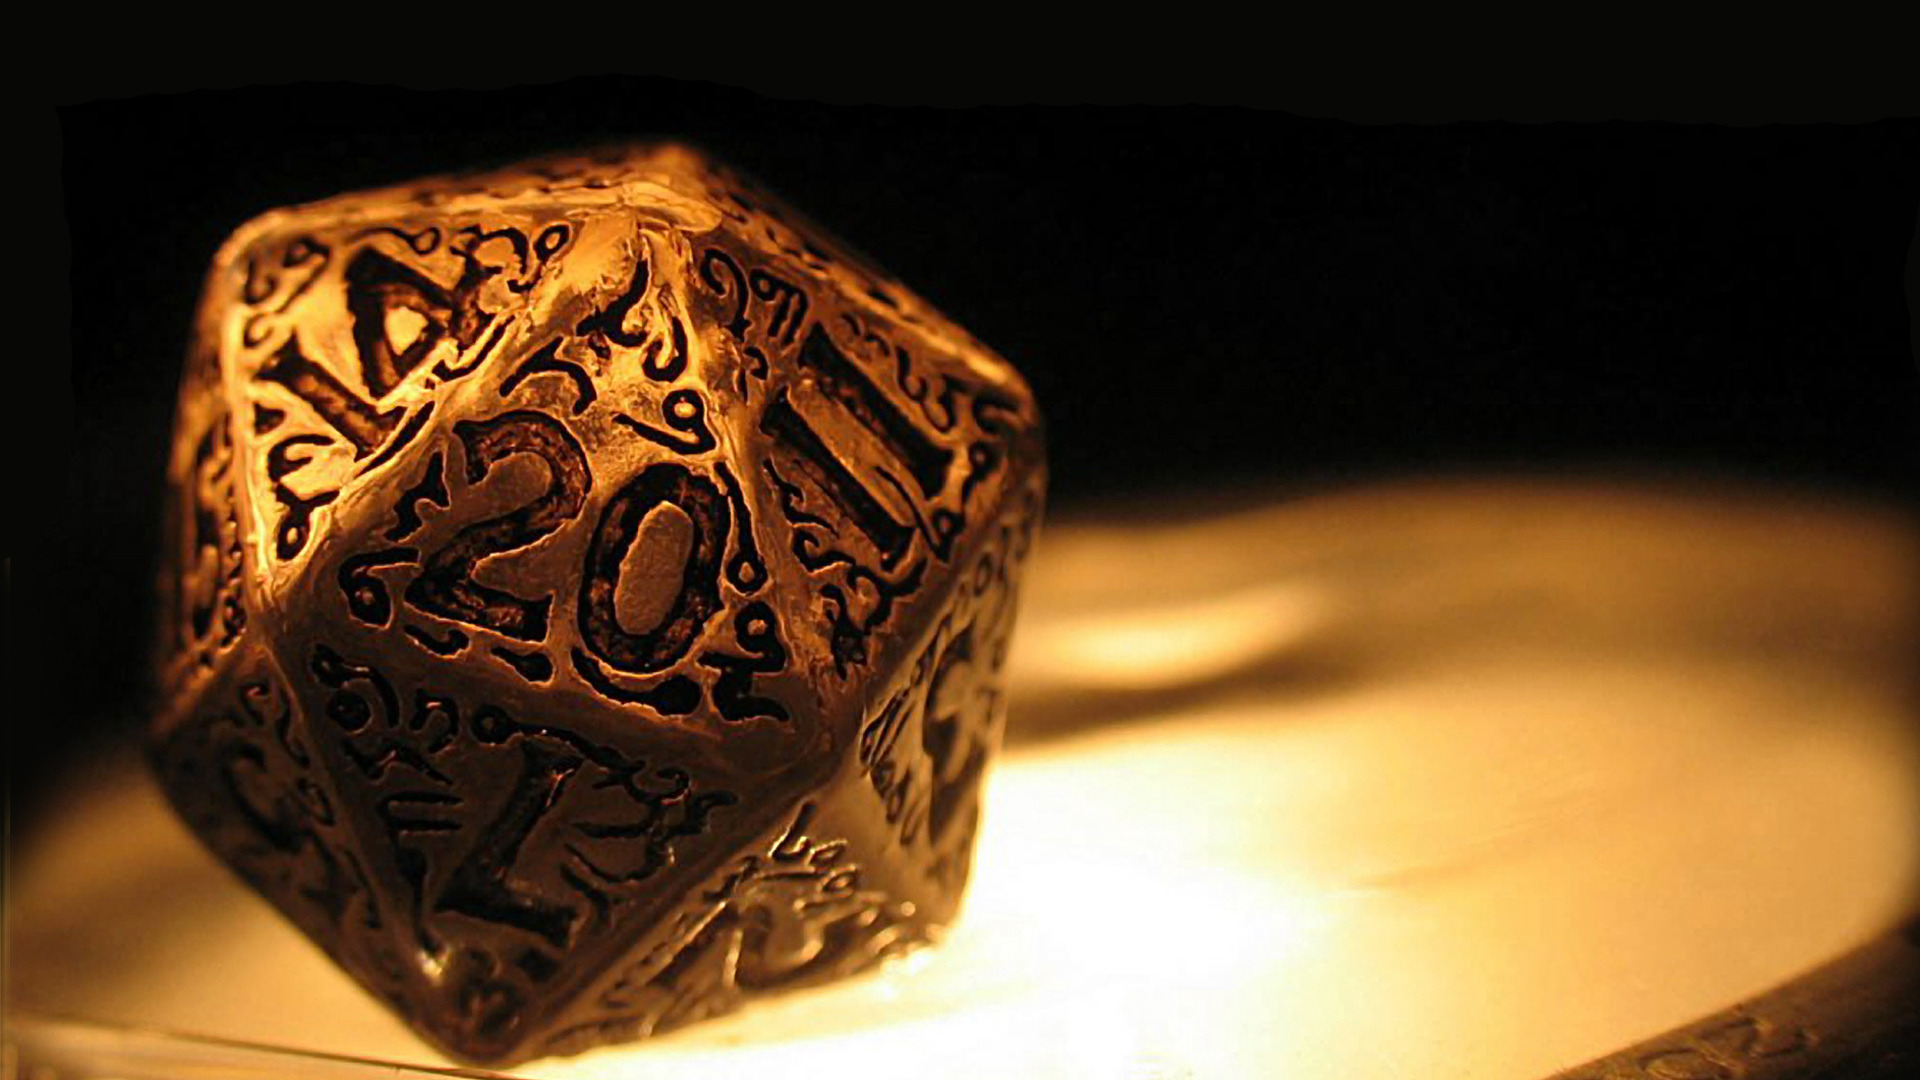 The Storyworld Dice